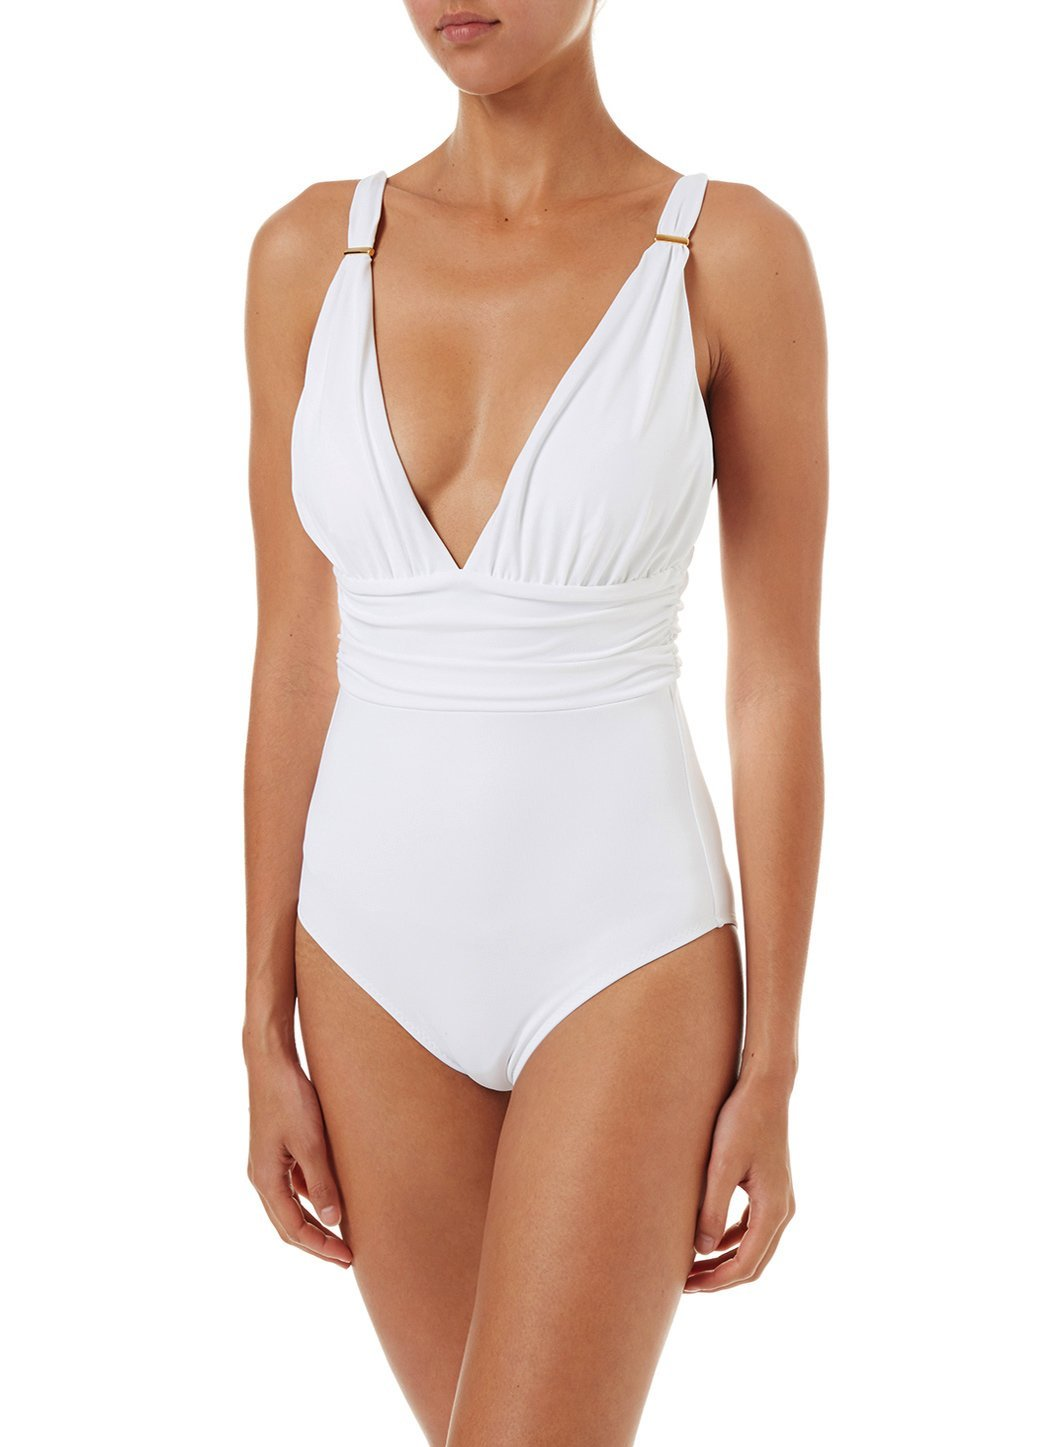 panarea white classic overtheshoulder ruched onepiece swimsuit 2019 F